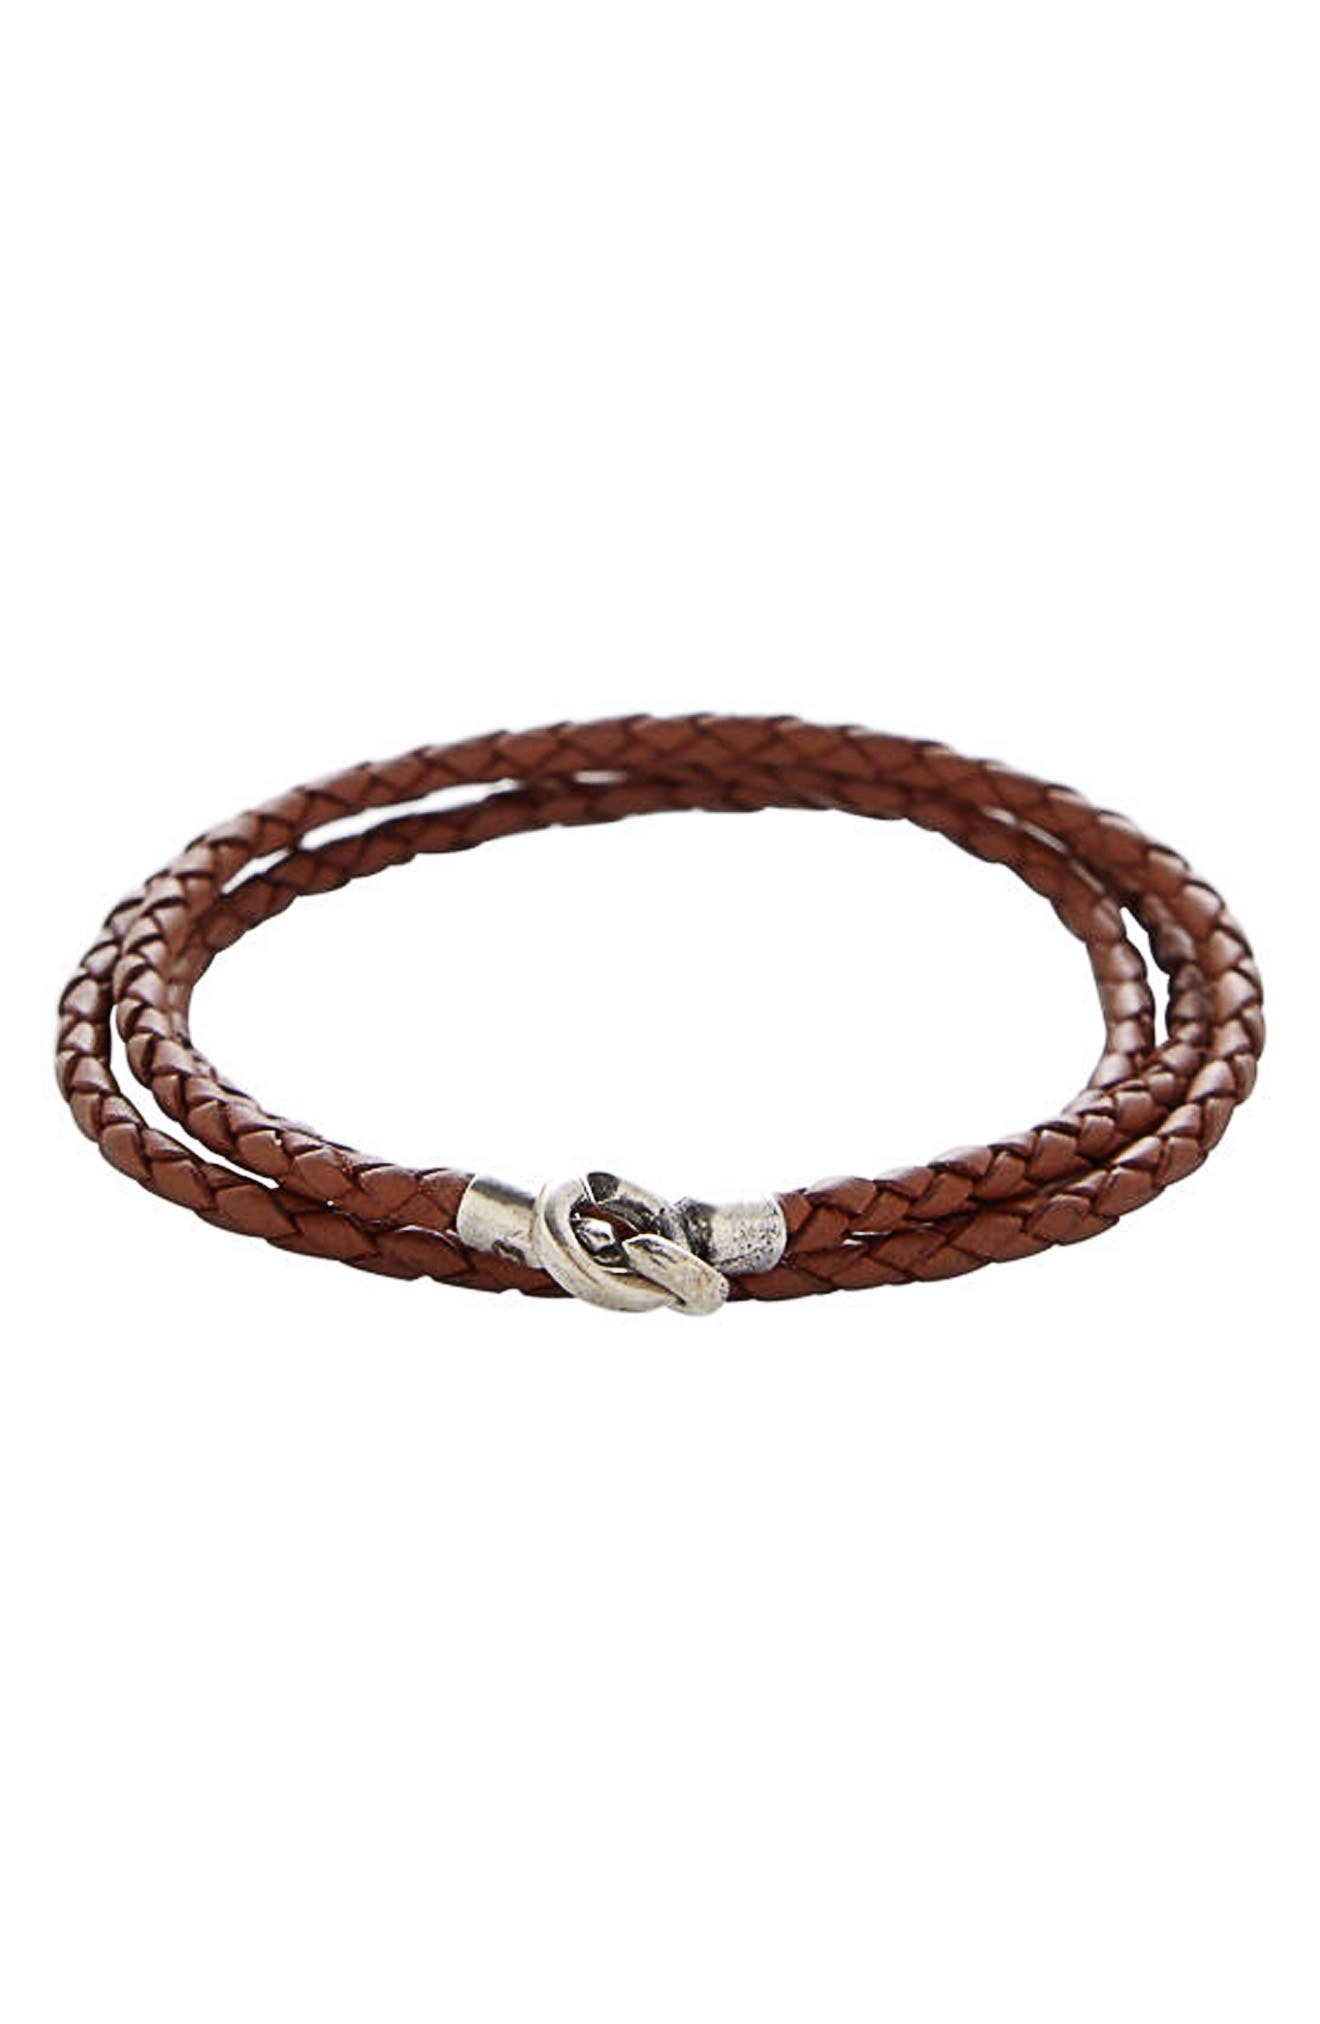 Leather Wrap Bracelet,                         Main,                         color, SADDLE